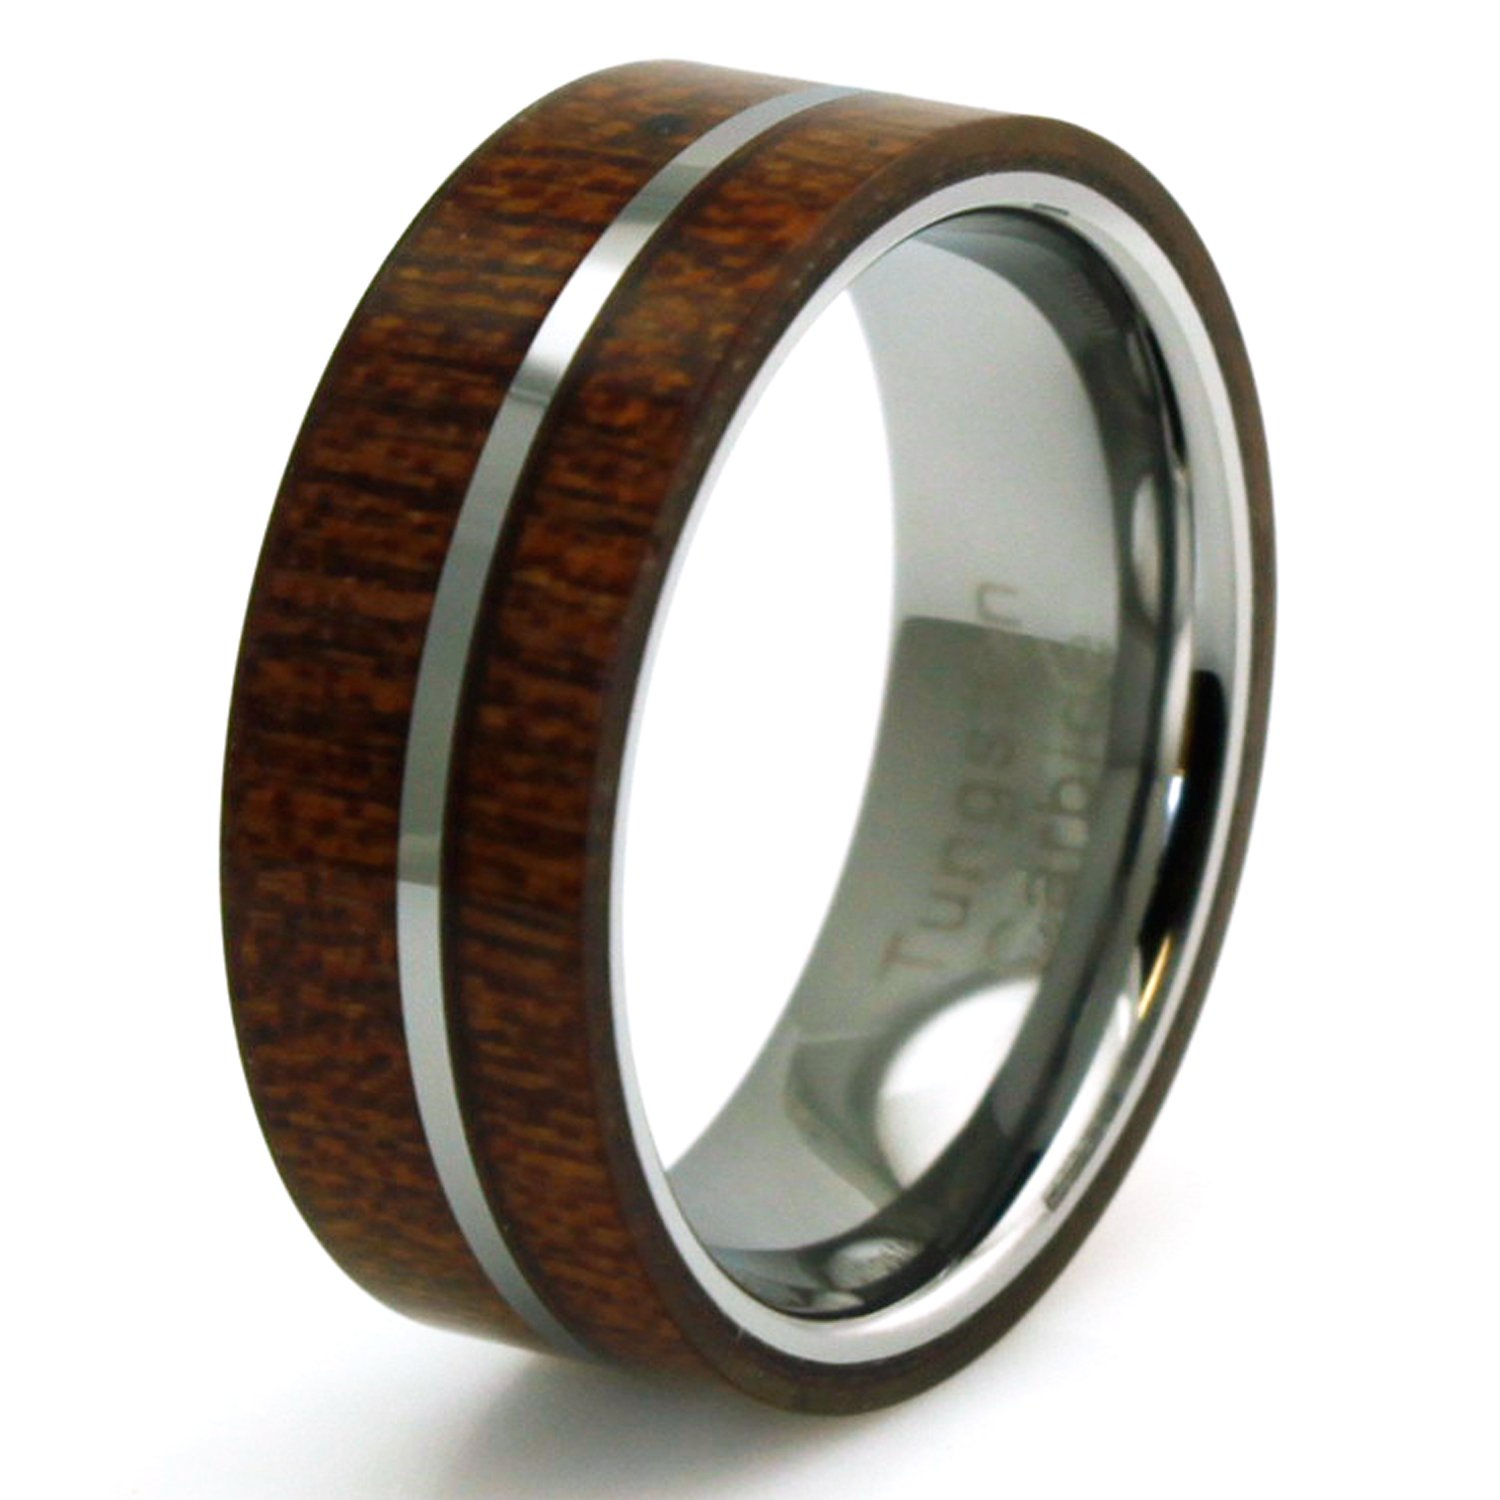 Titanium Mahogany Wood and Off-center Silver Colored Band Ring, Size 11